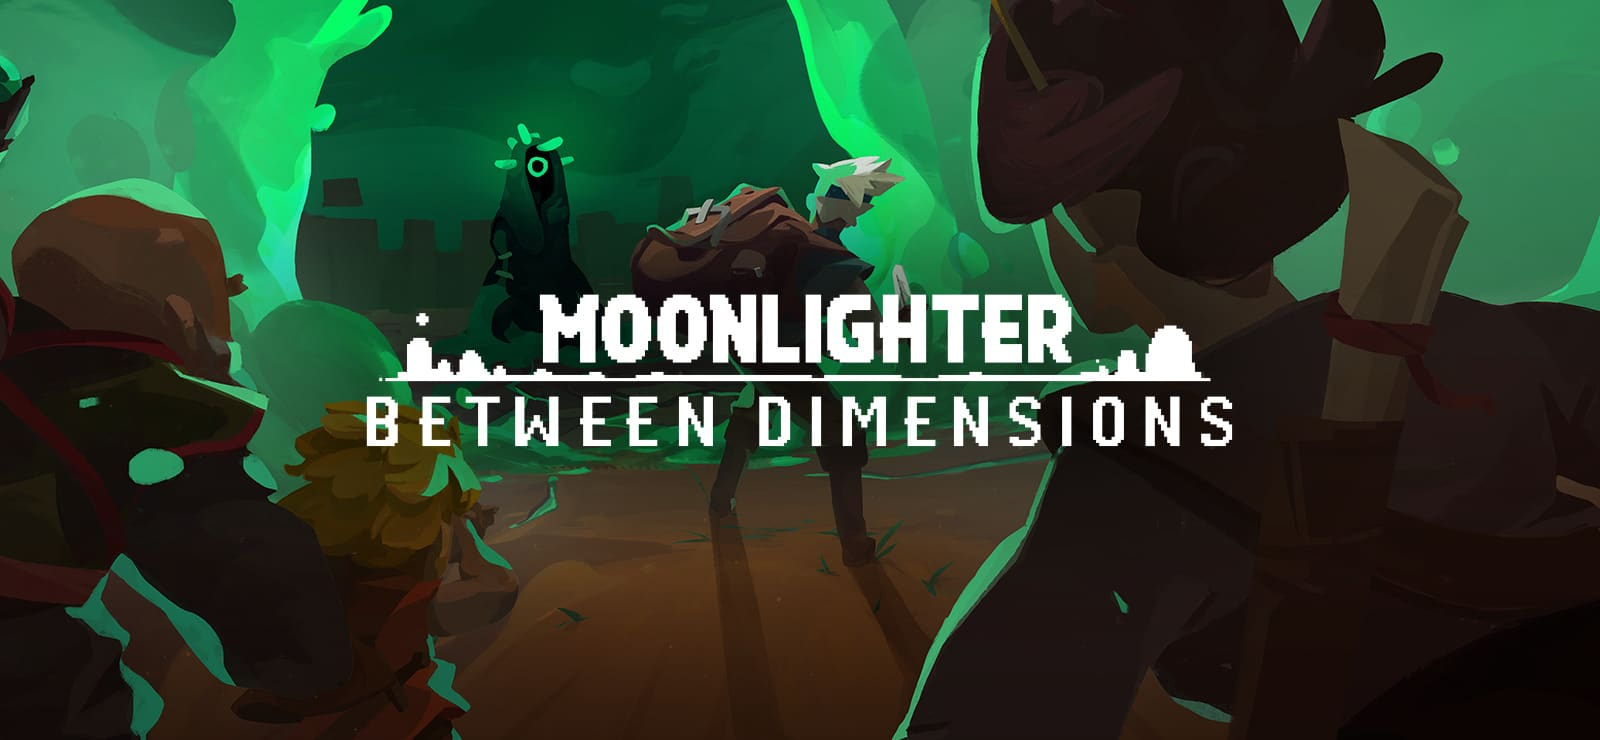 Moonlighter: Between Dimensions komt uit op 29 mei